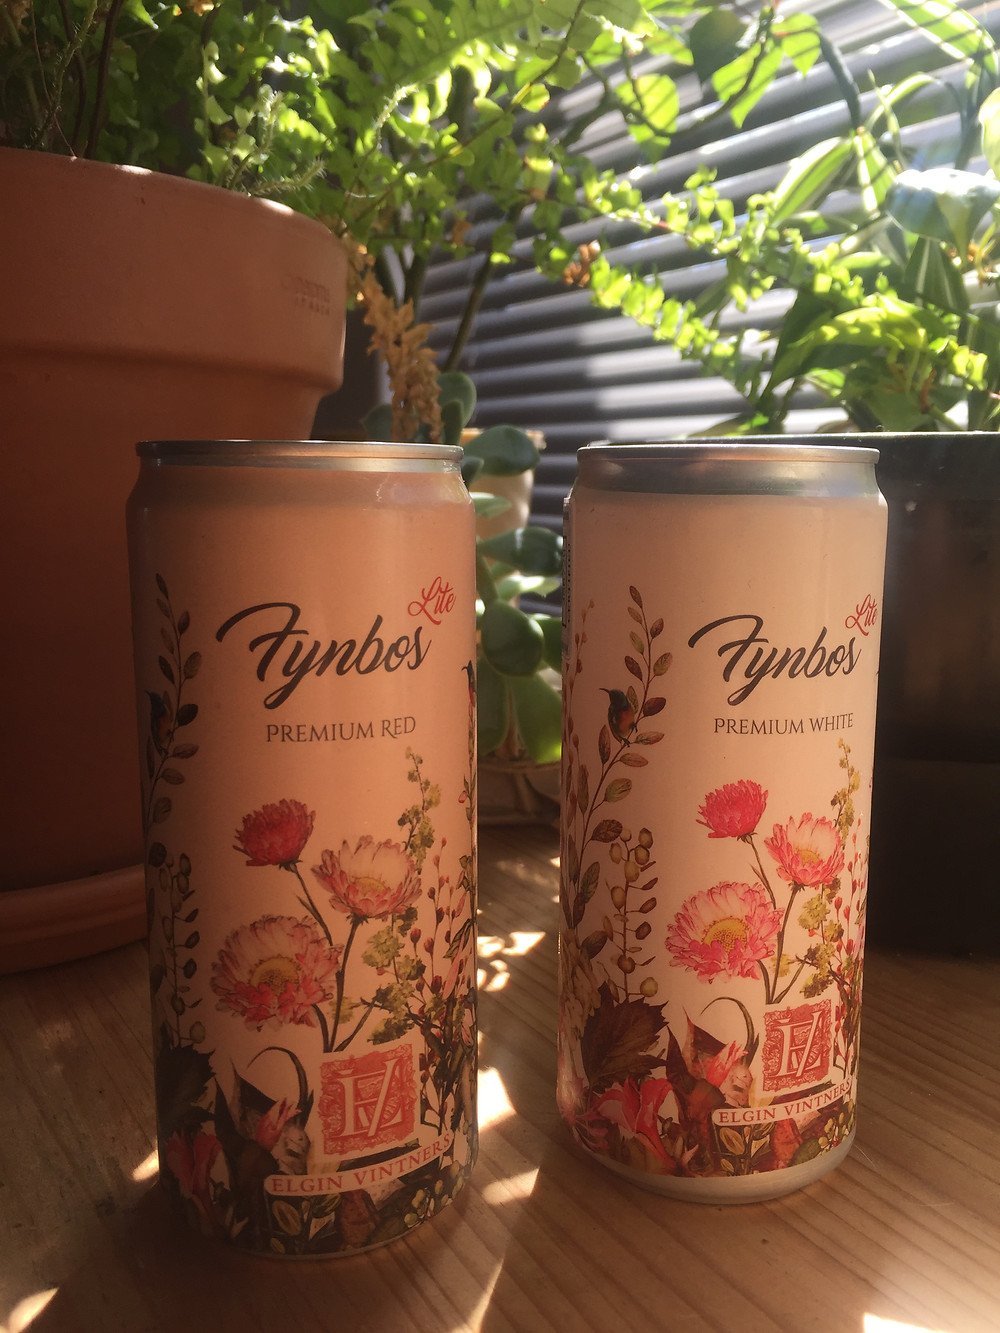 Elgin Vintners Fynbos LITE wine is available in a red and white wine. The wine is packaged in a can.